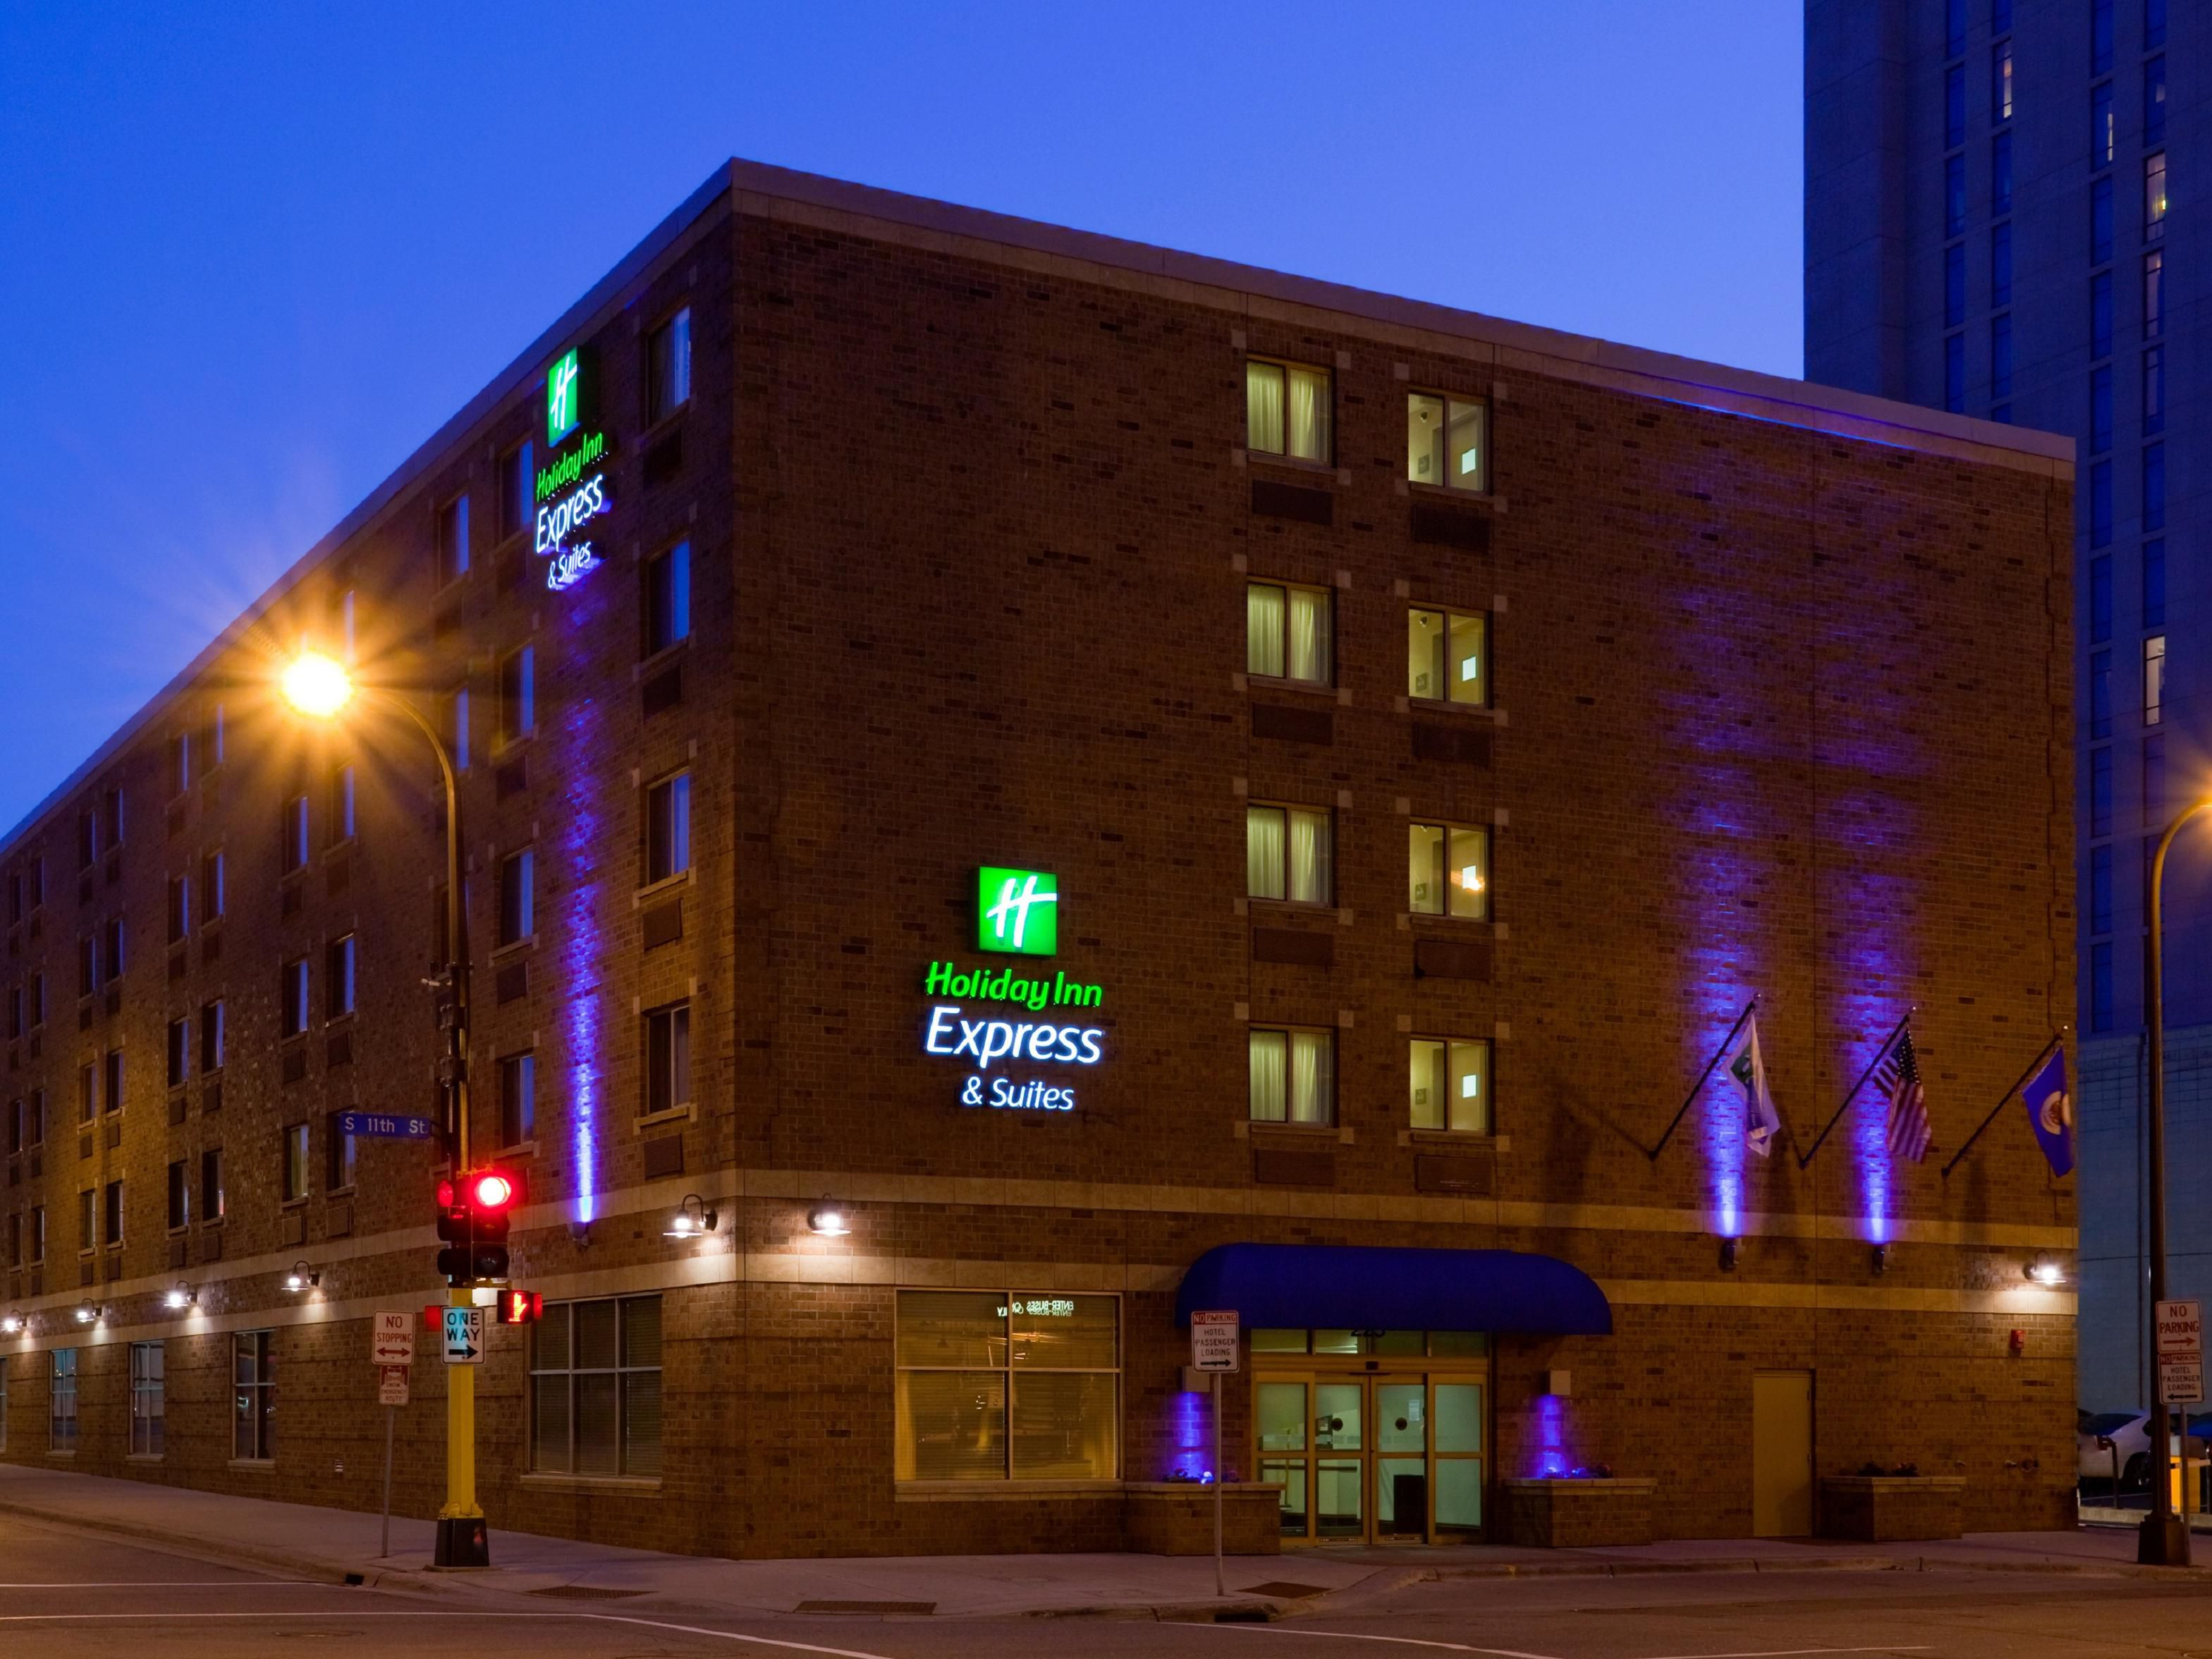 Holiday Inn Express & Suites Dwtn Mpls Conv Ctr - Exterior Night